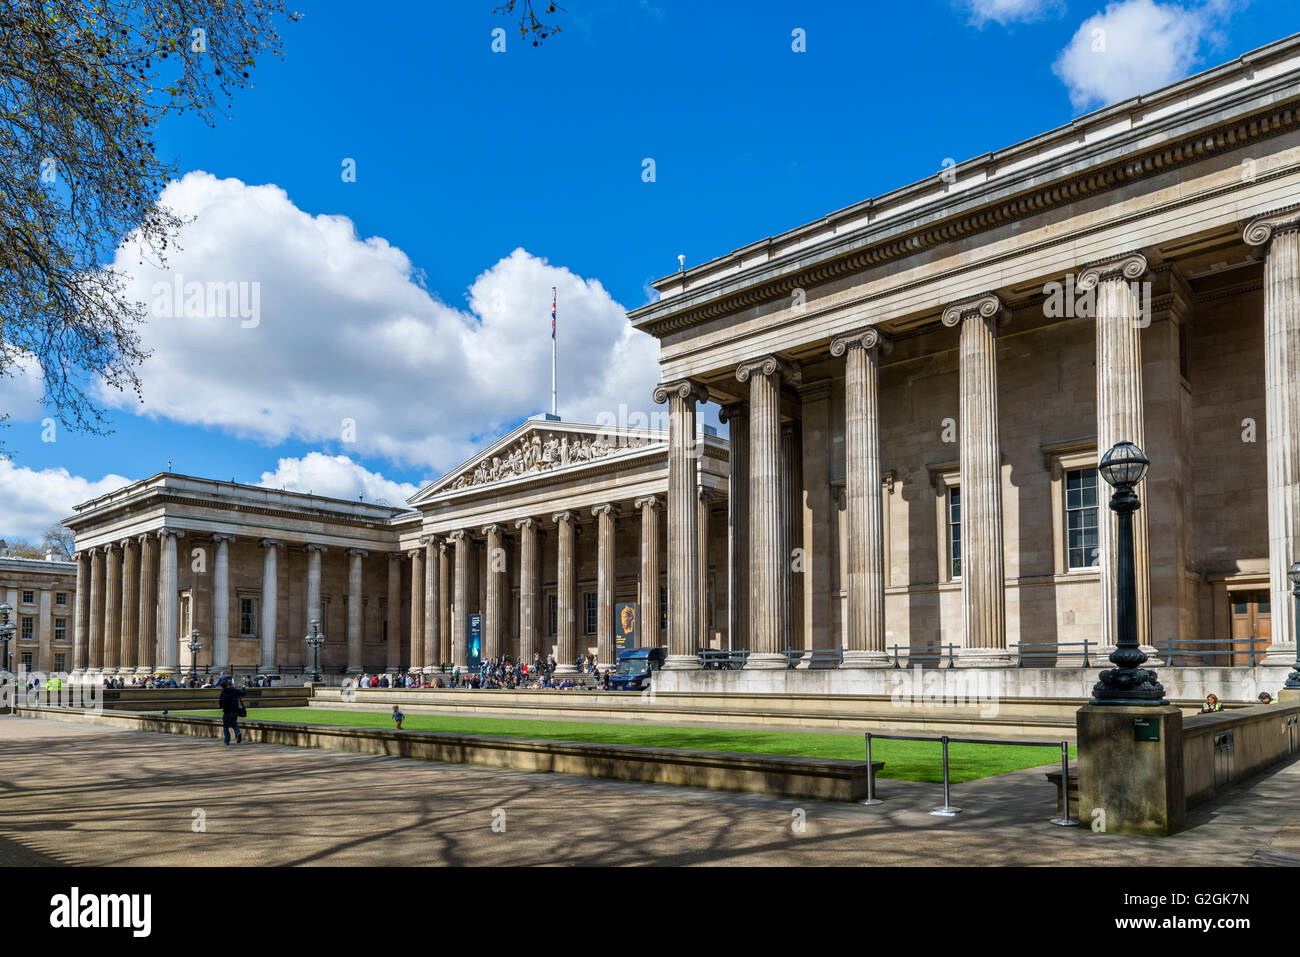 The Great Russell Street facade of the British Museum, Great Russell Street, Bloomsbury, London, England, UK - Stock Image